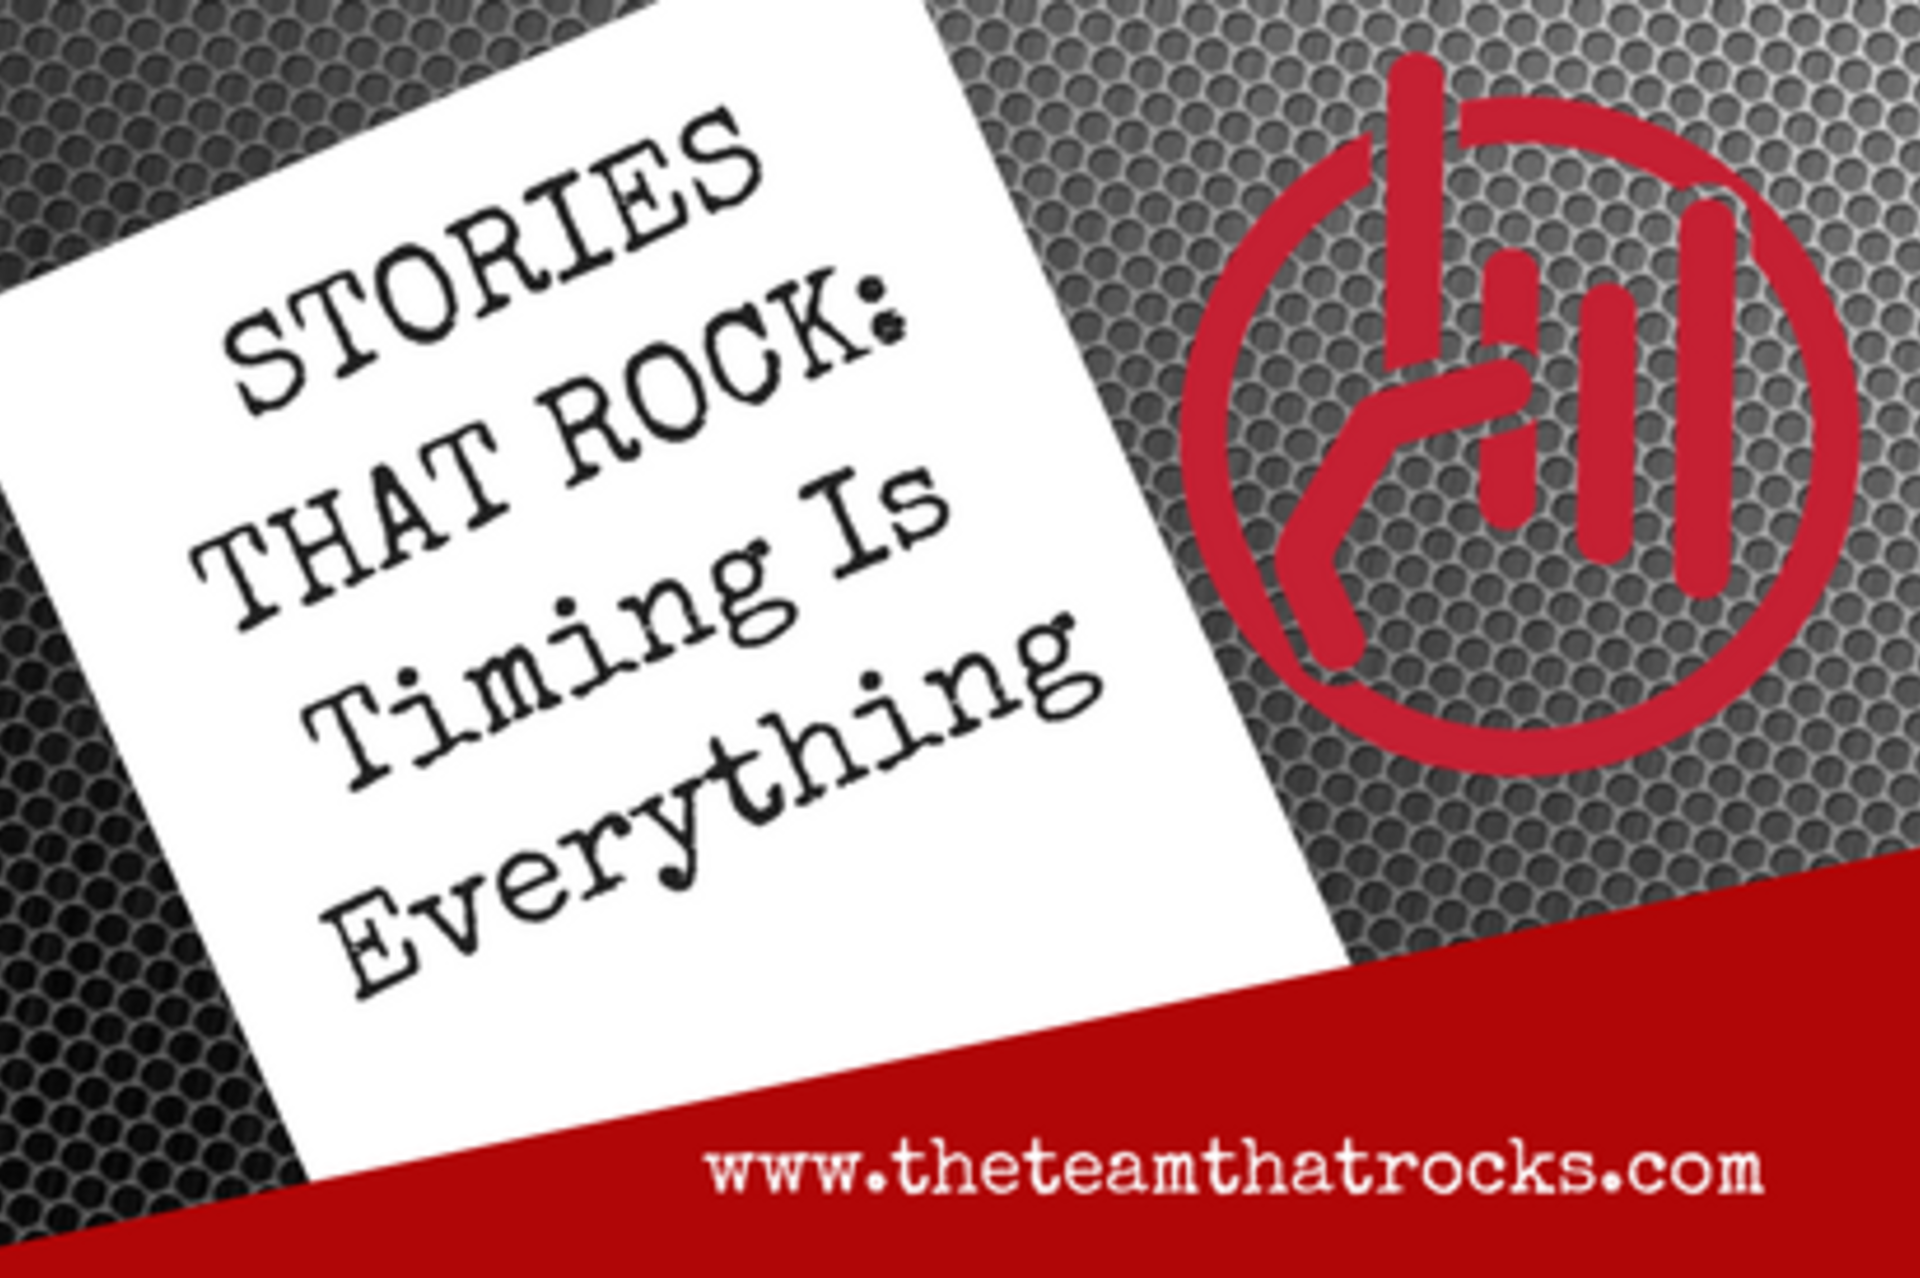 STORIES THAT ROCK: Timing Is Everything